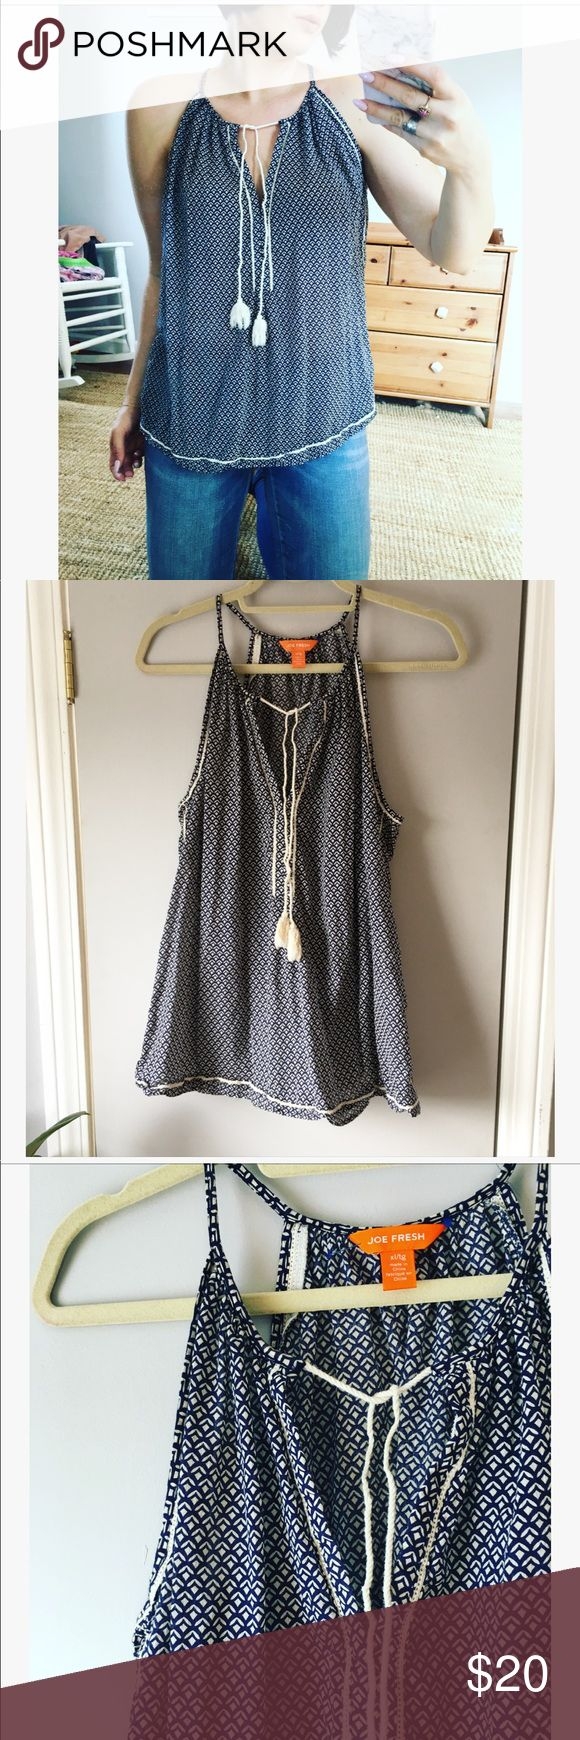 Joe Fresh navy blue and white tassel tank top Joe Fresh 100% cotten blue and white print  lightweight sleeveless top with tassel details. This is a perfect spring top! Would be cute with white denim and under a cardigan!   Make me an offer or add to a bundle for a private discount 😘 Joe Fresh Tops Tank Tops